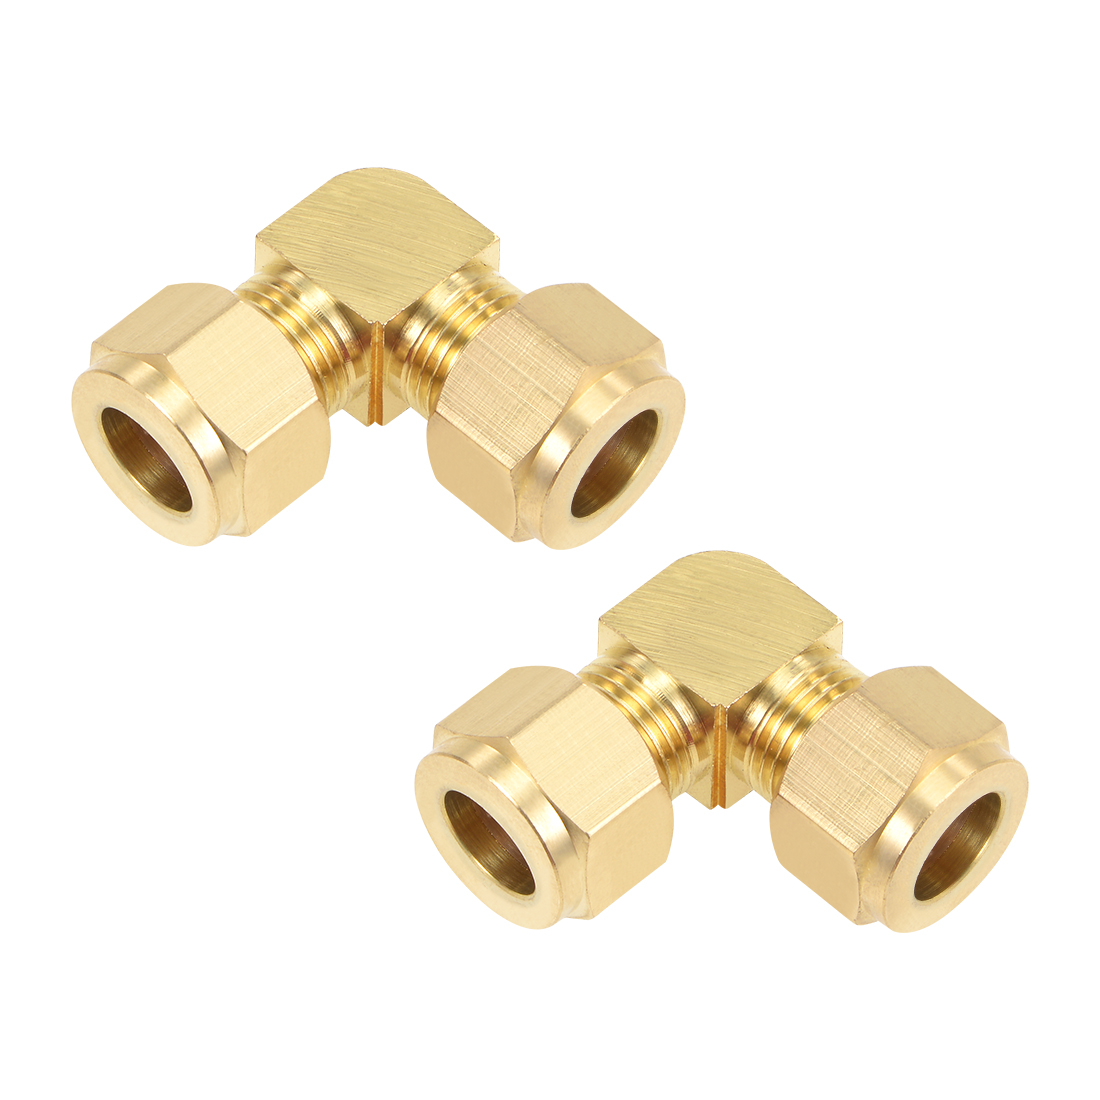 Brass Compression Tube Fitting 10mm OD 90 Degree Elbow Pipe Adapter 2pcs